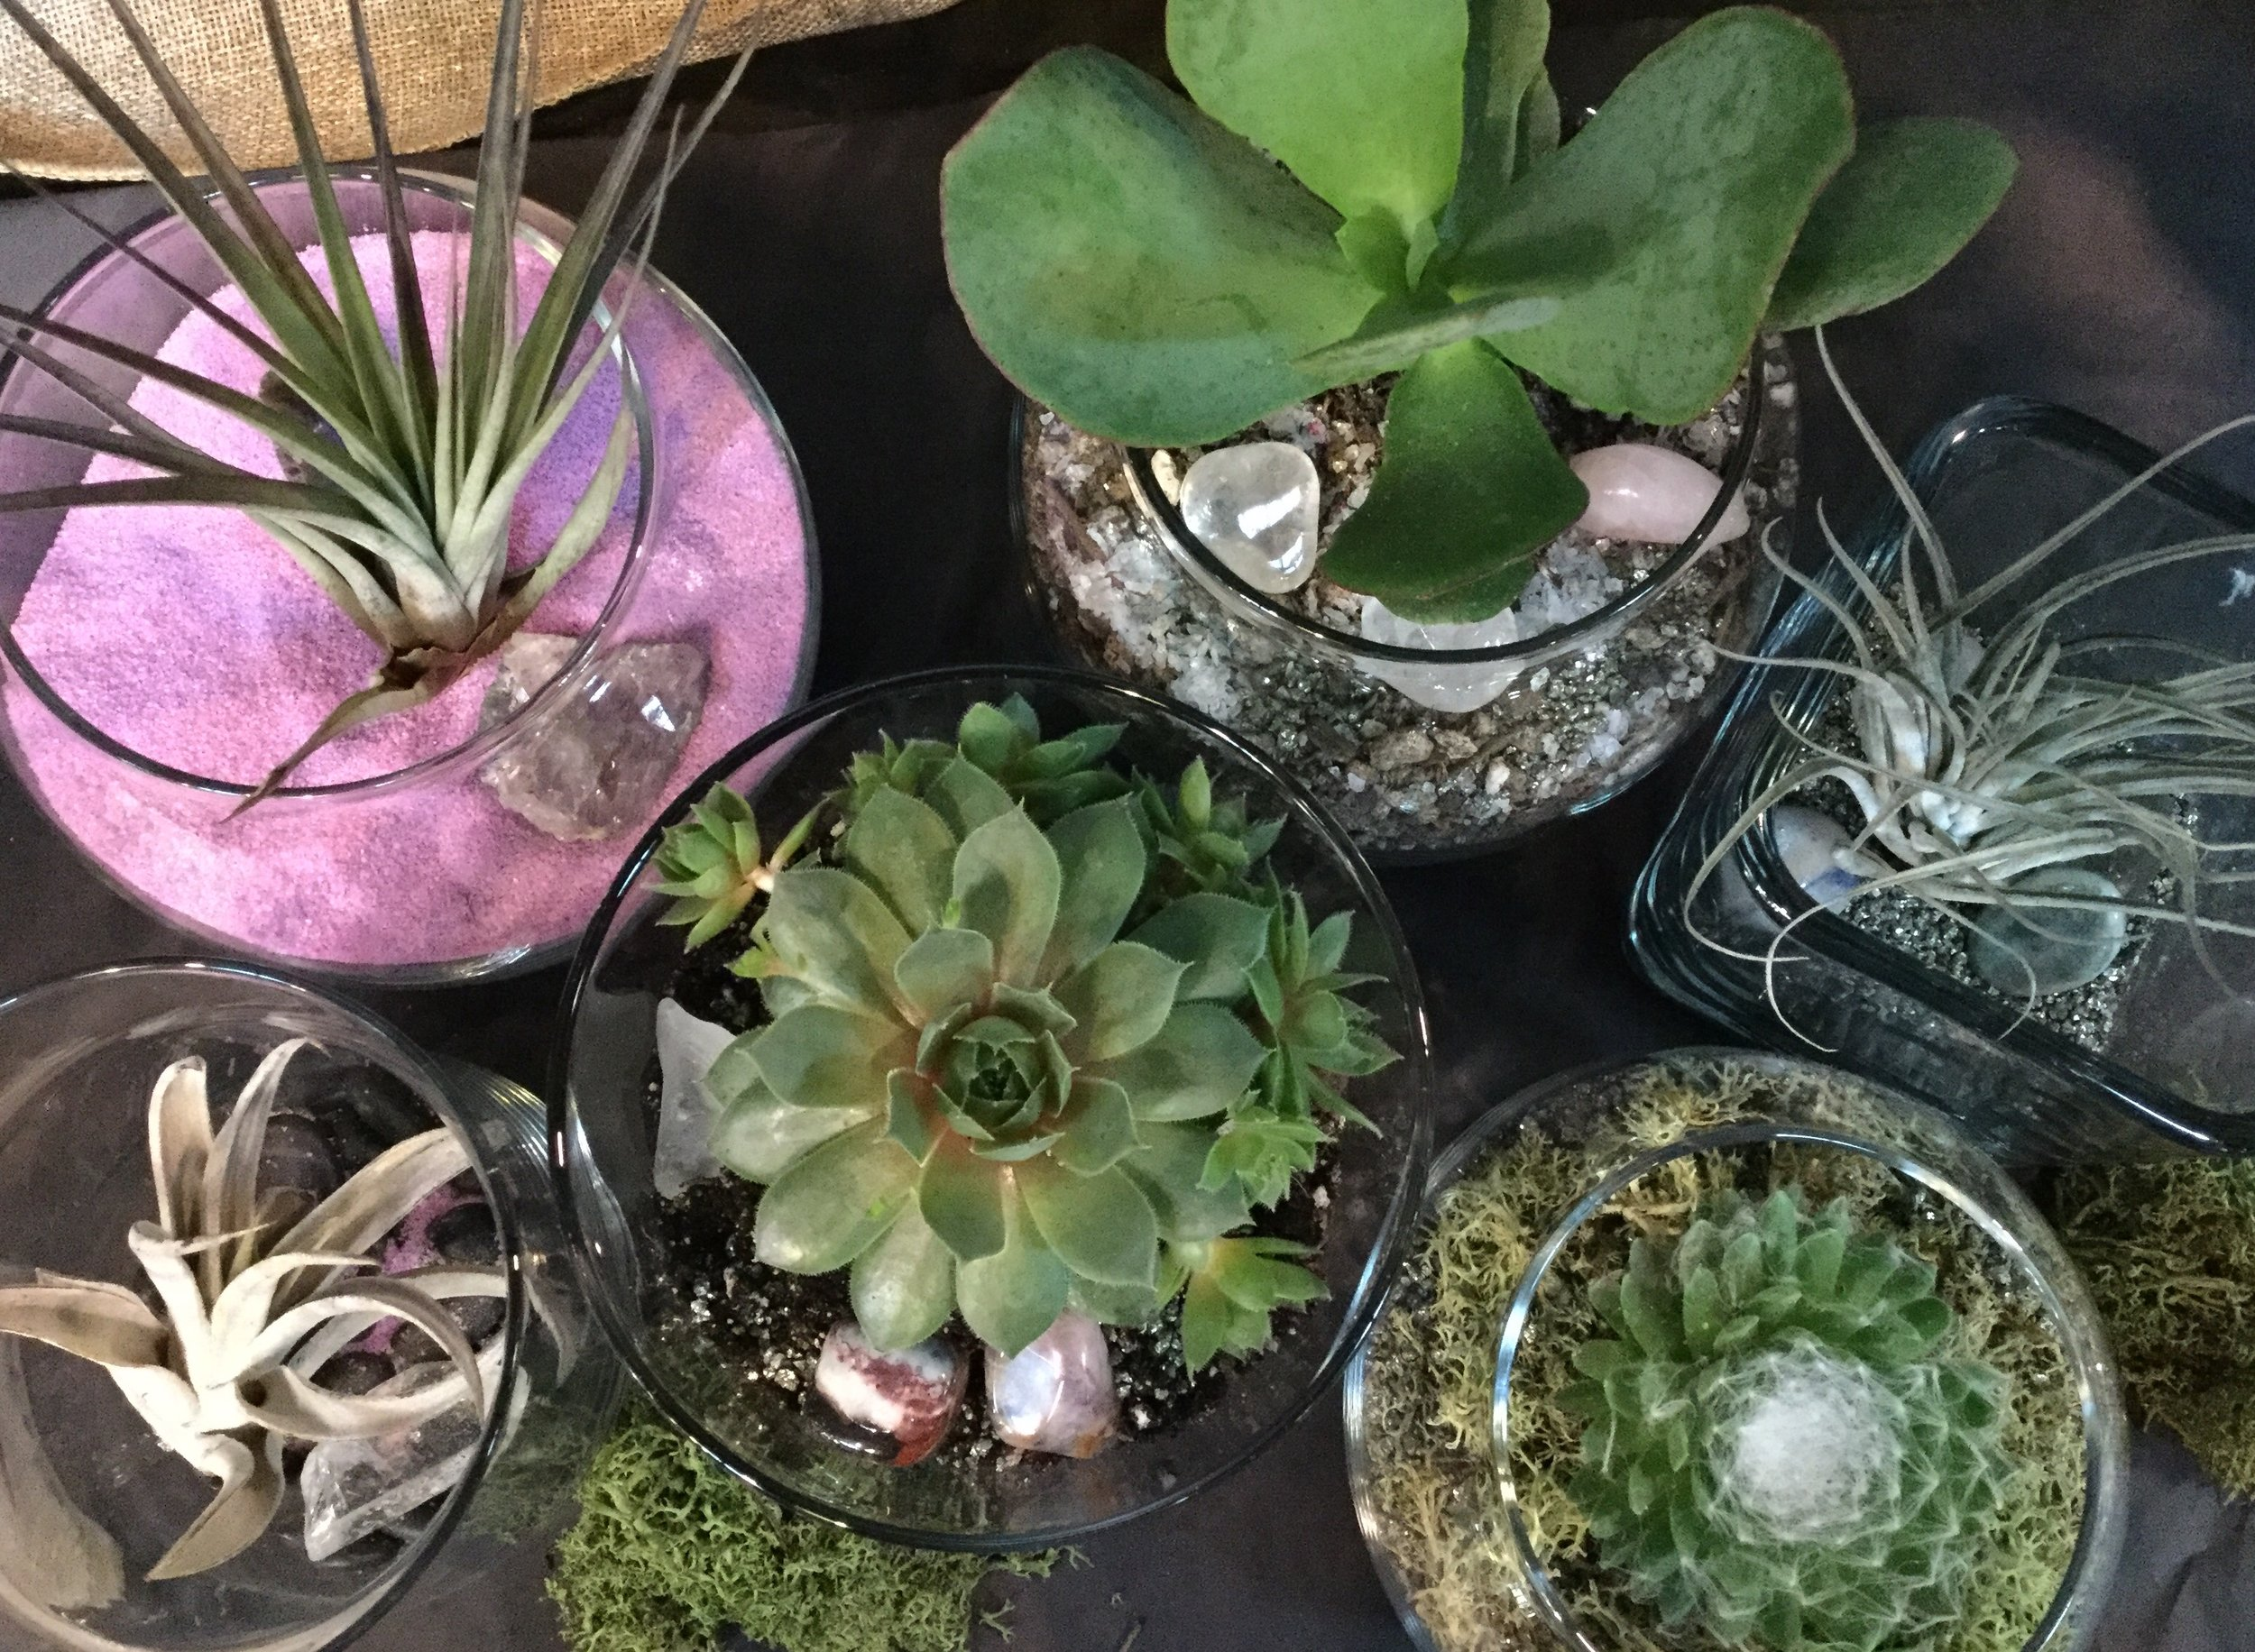 Mini succulent and air plant terrariums with sand and stones. $15-20 with tax